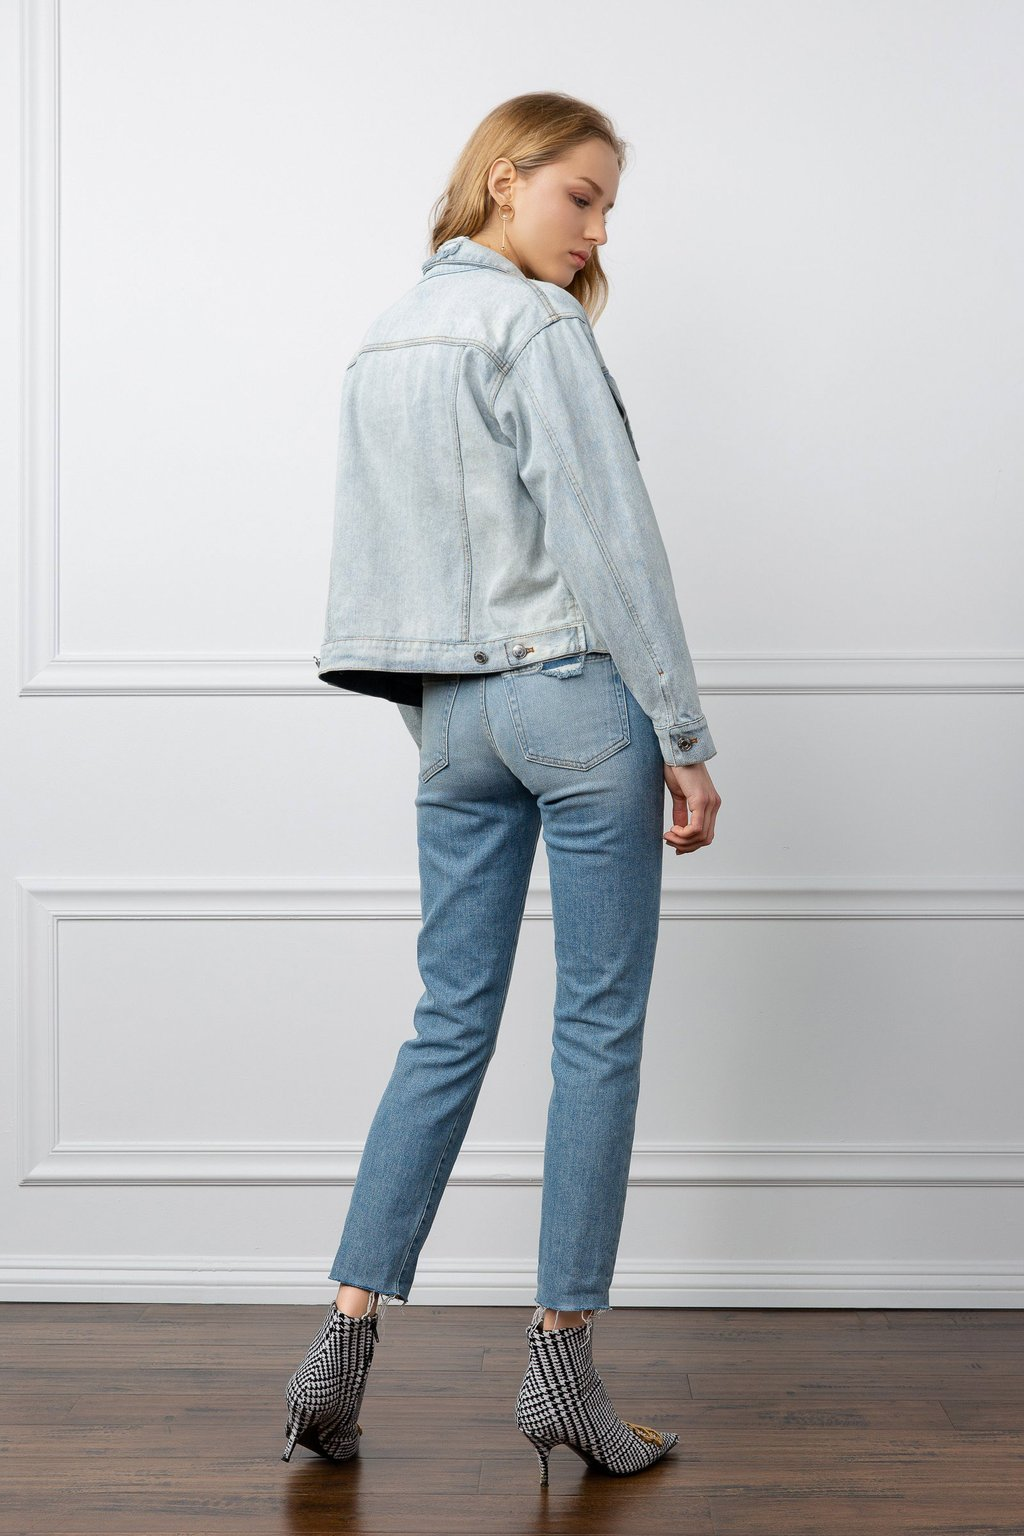 True Denim Jacket by J.ING women's fashion clothing